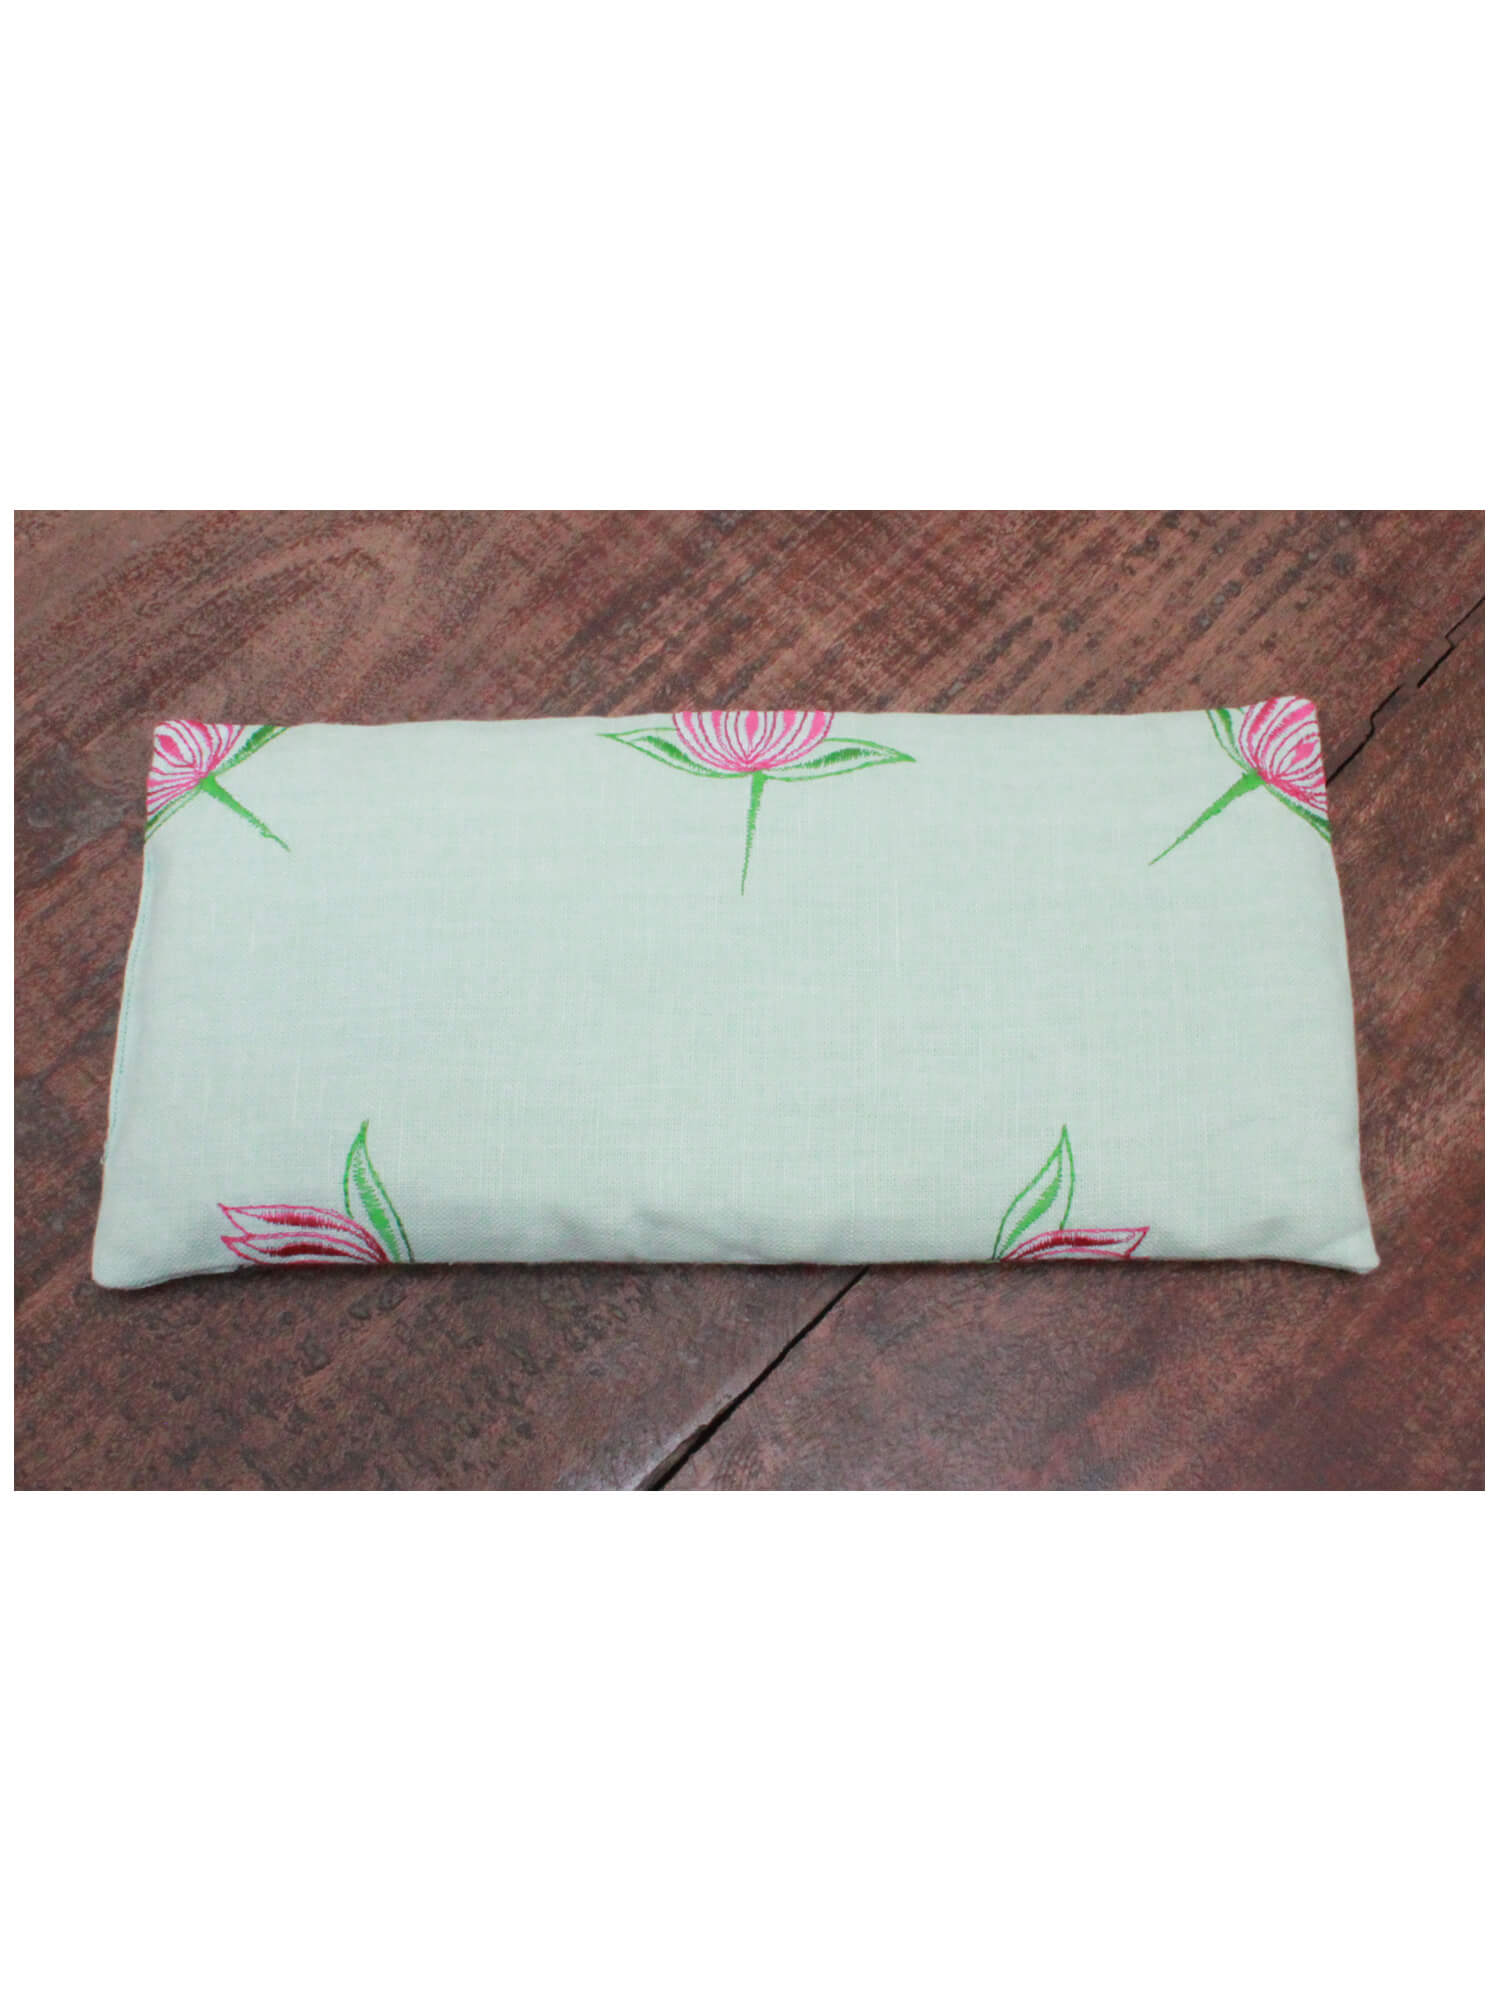 NECK WARMER PILLOW | FROSTED MINT LOTUS